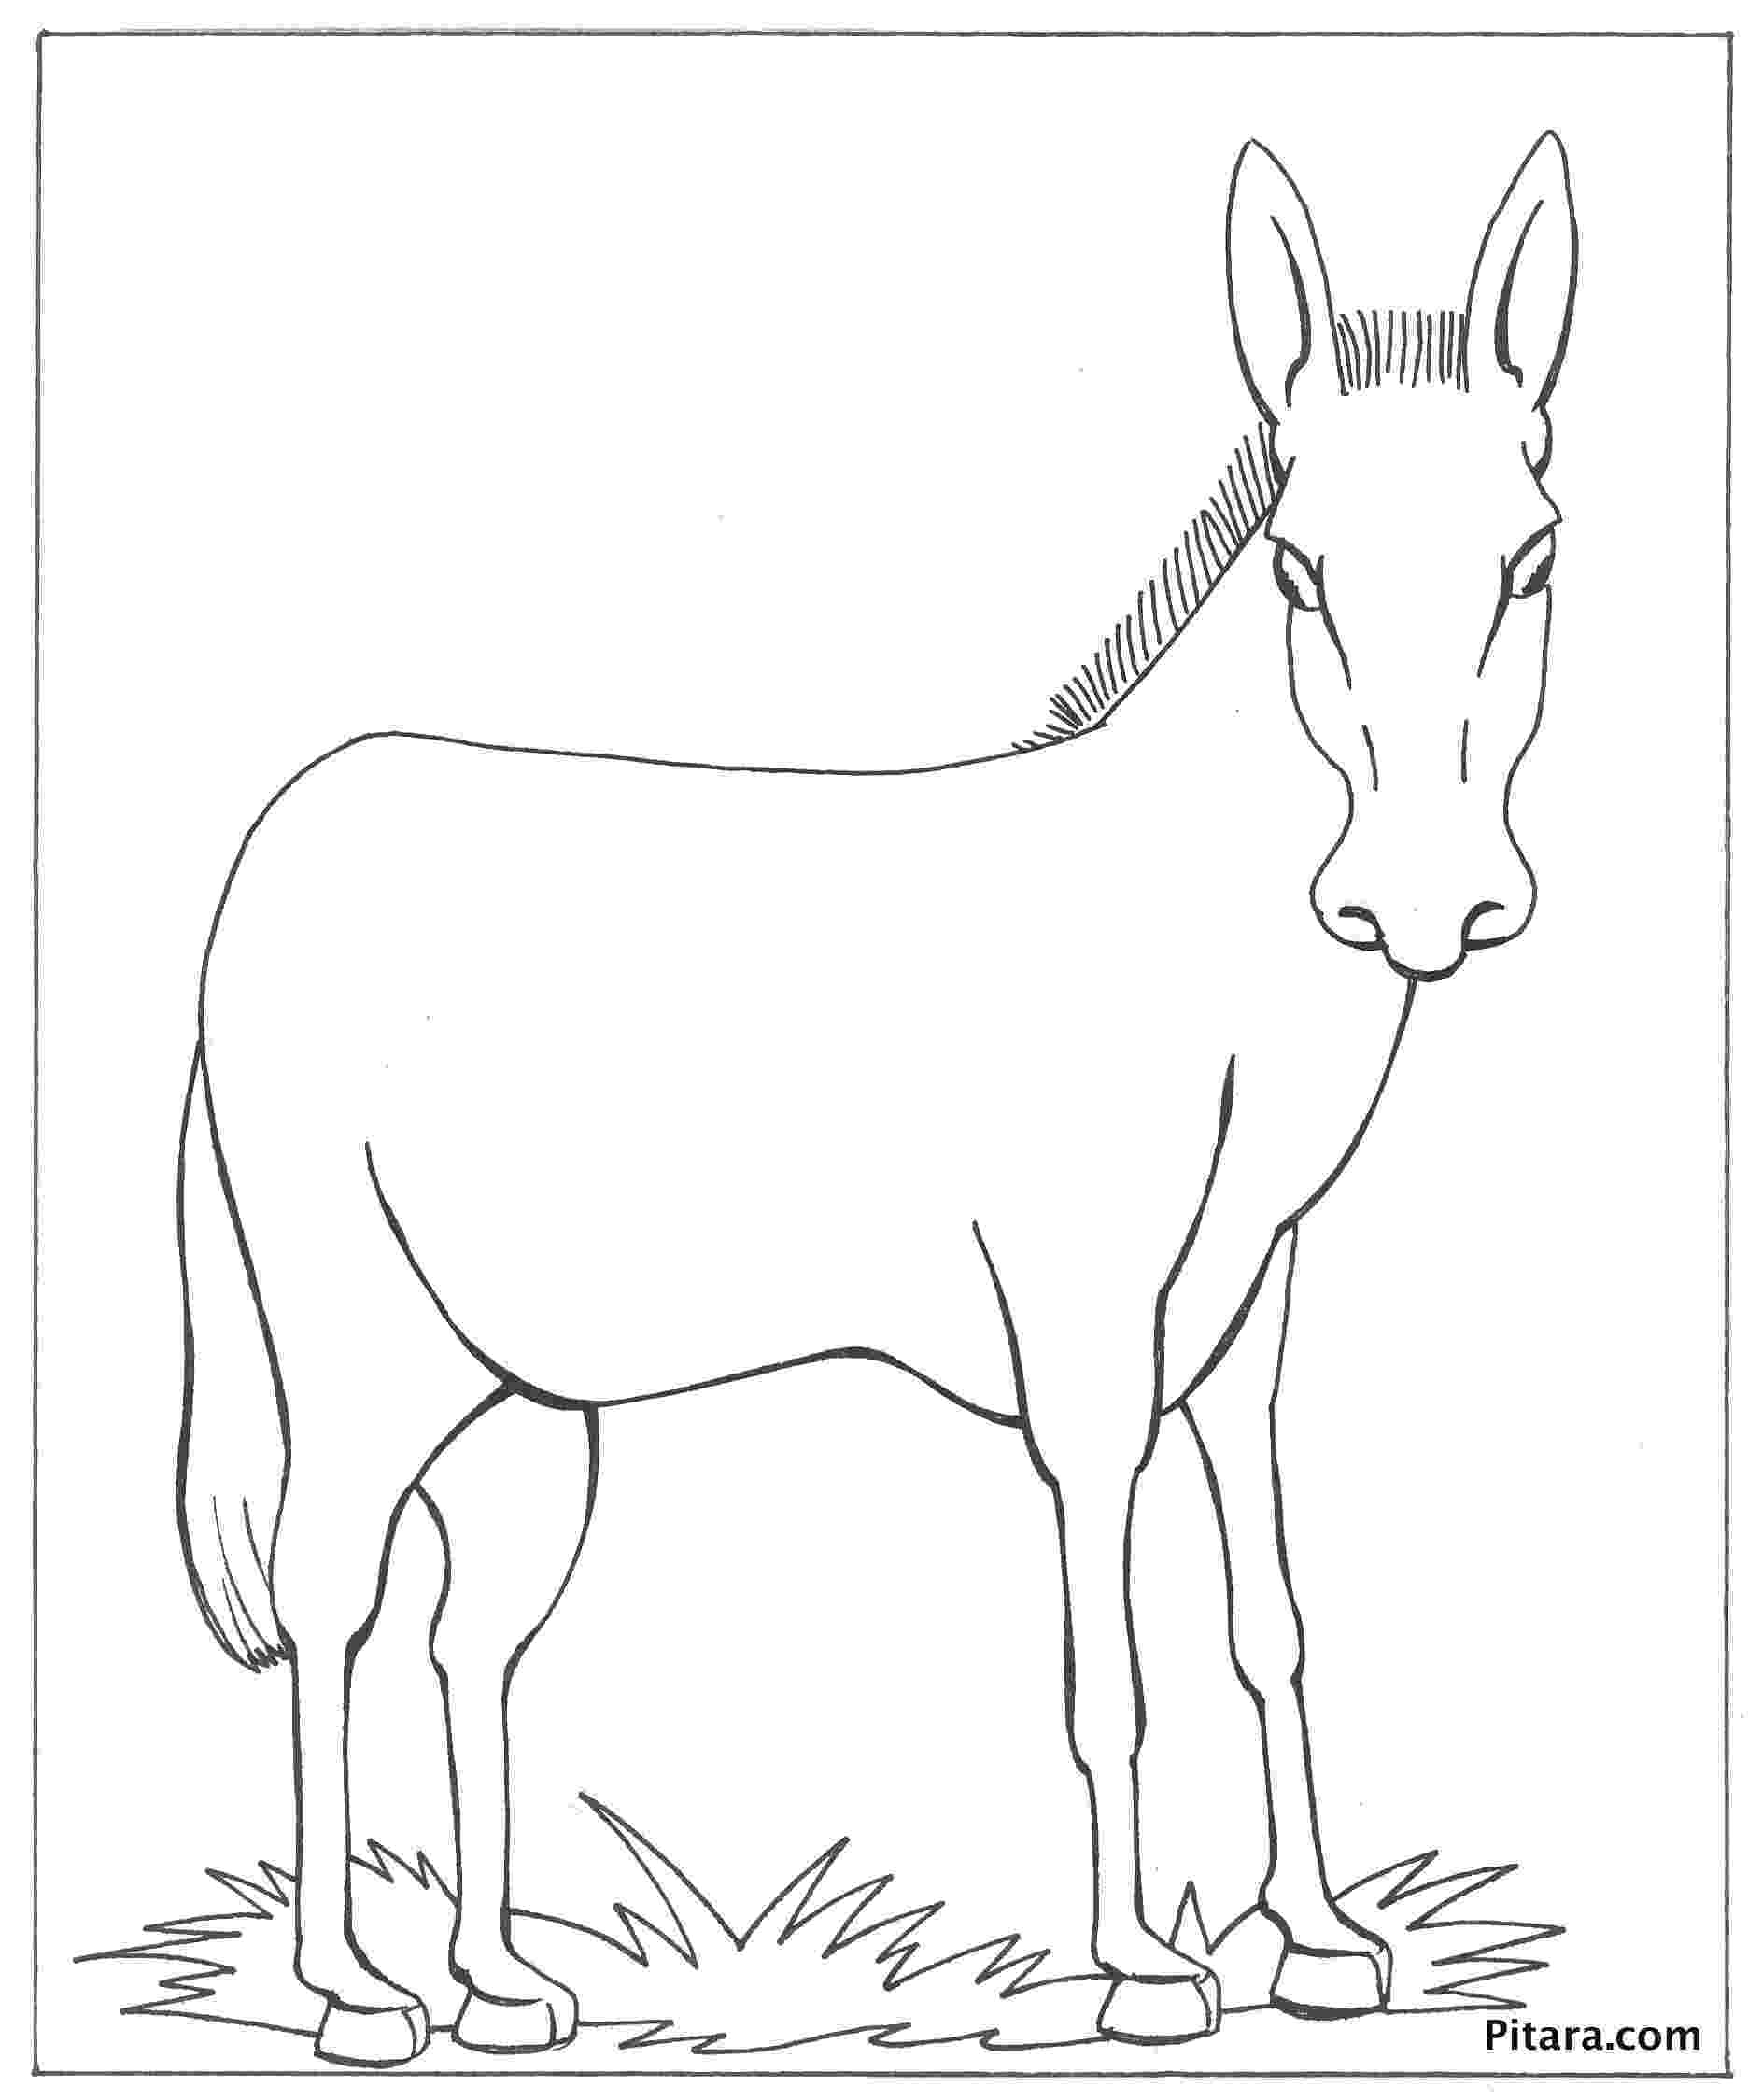 coloring pages donkey 305 best images about color horses donkeys mules and donkey coloring pages